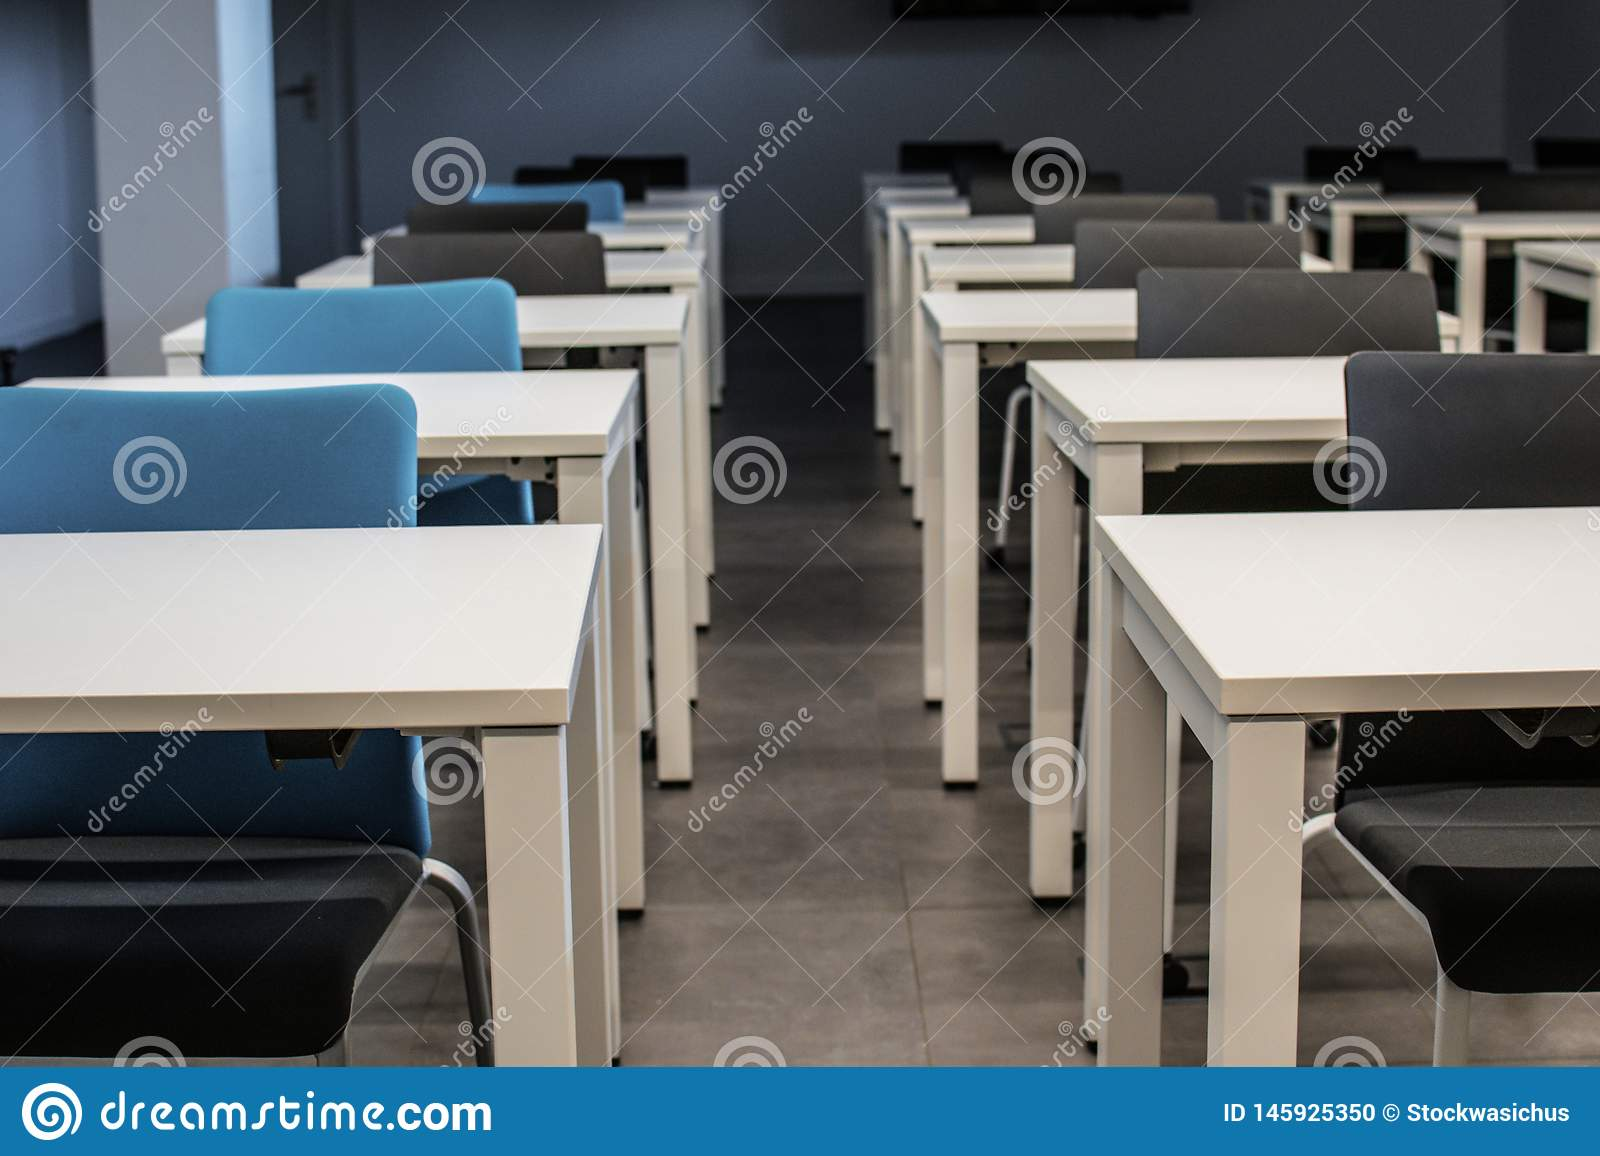 Classroom empty. High school or university desk or table with a pen on top